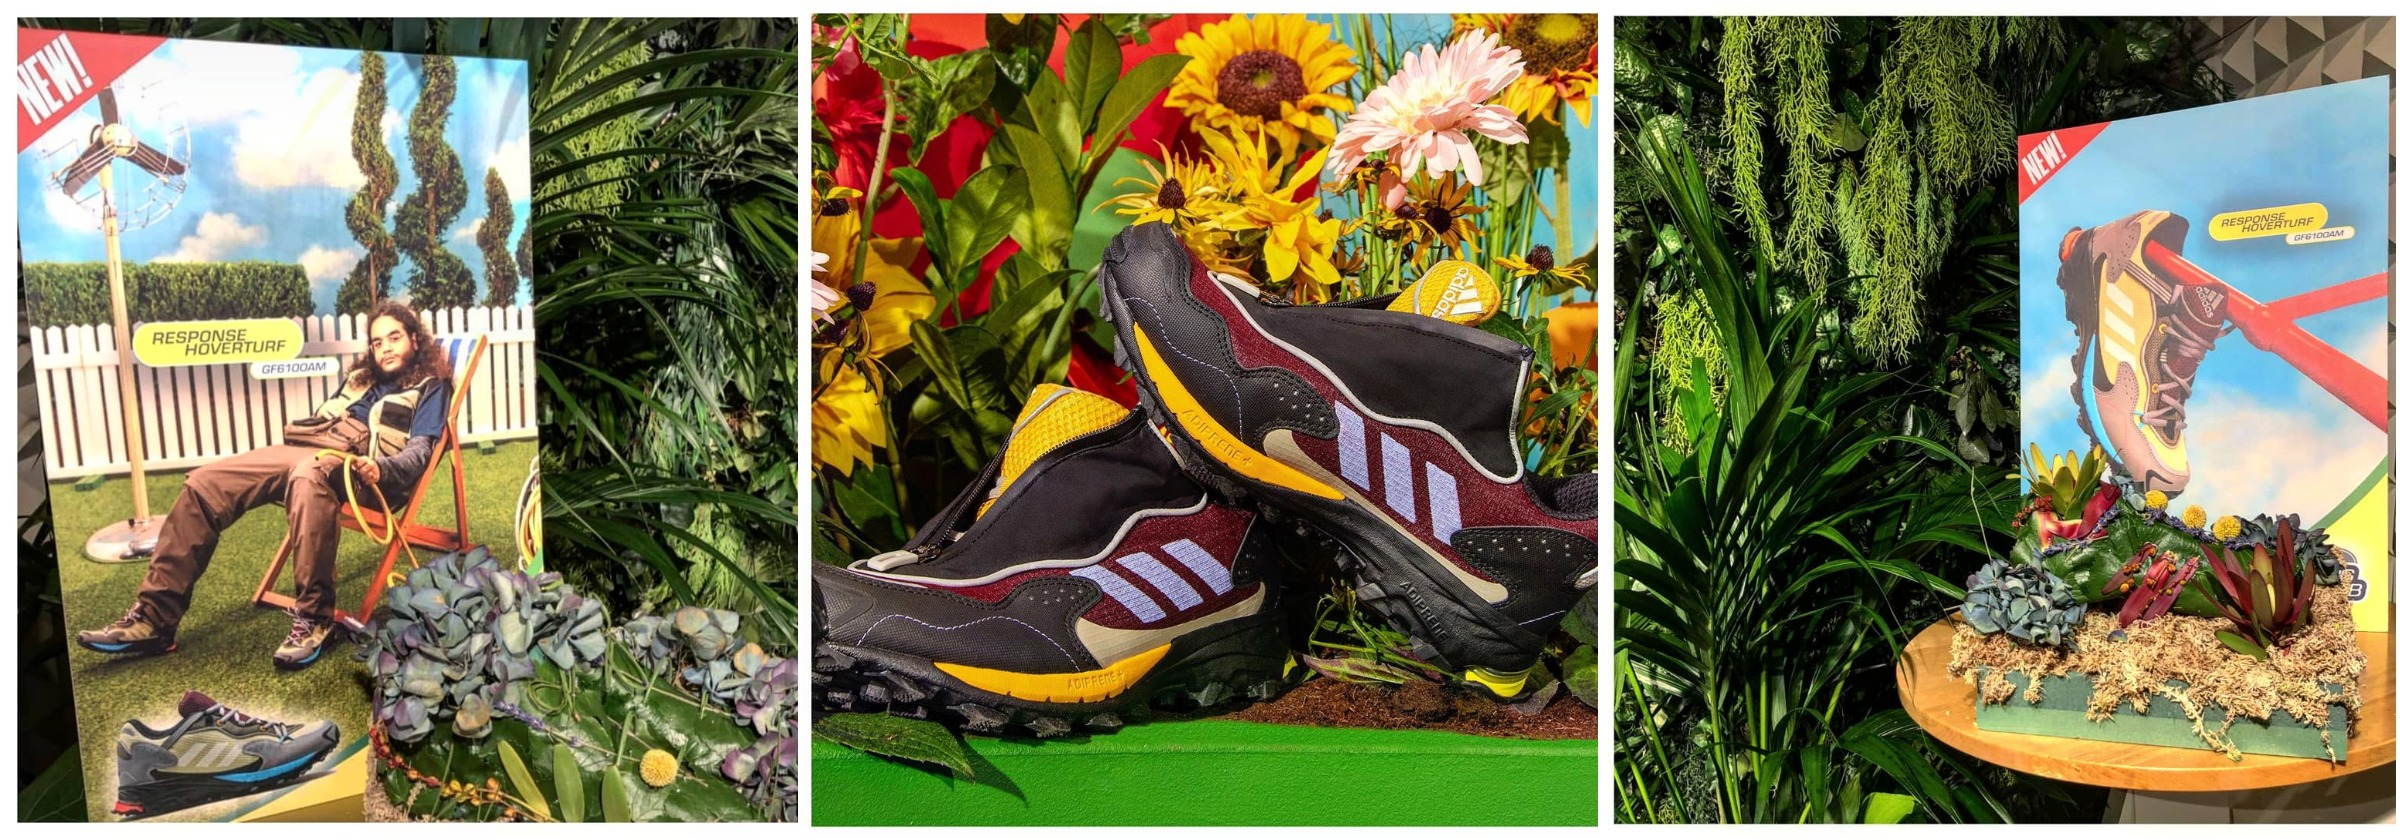 pictures of campaign for gardening shoes